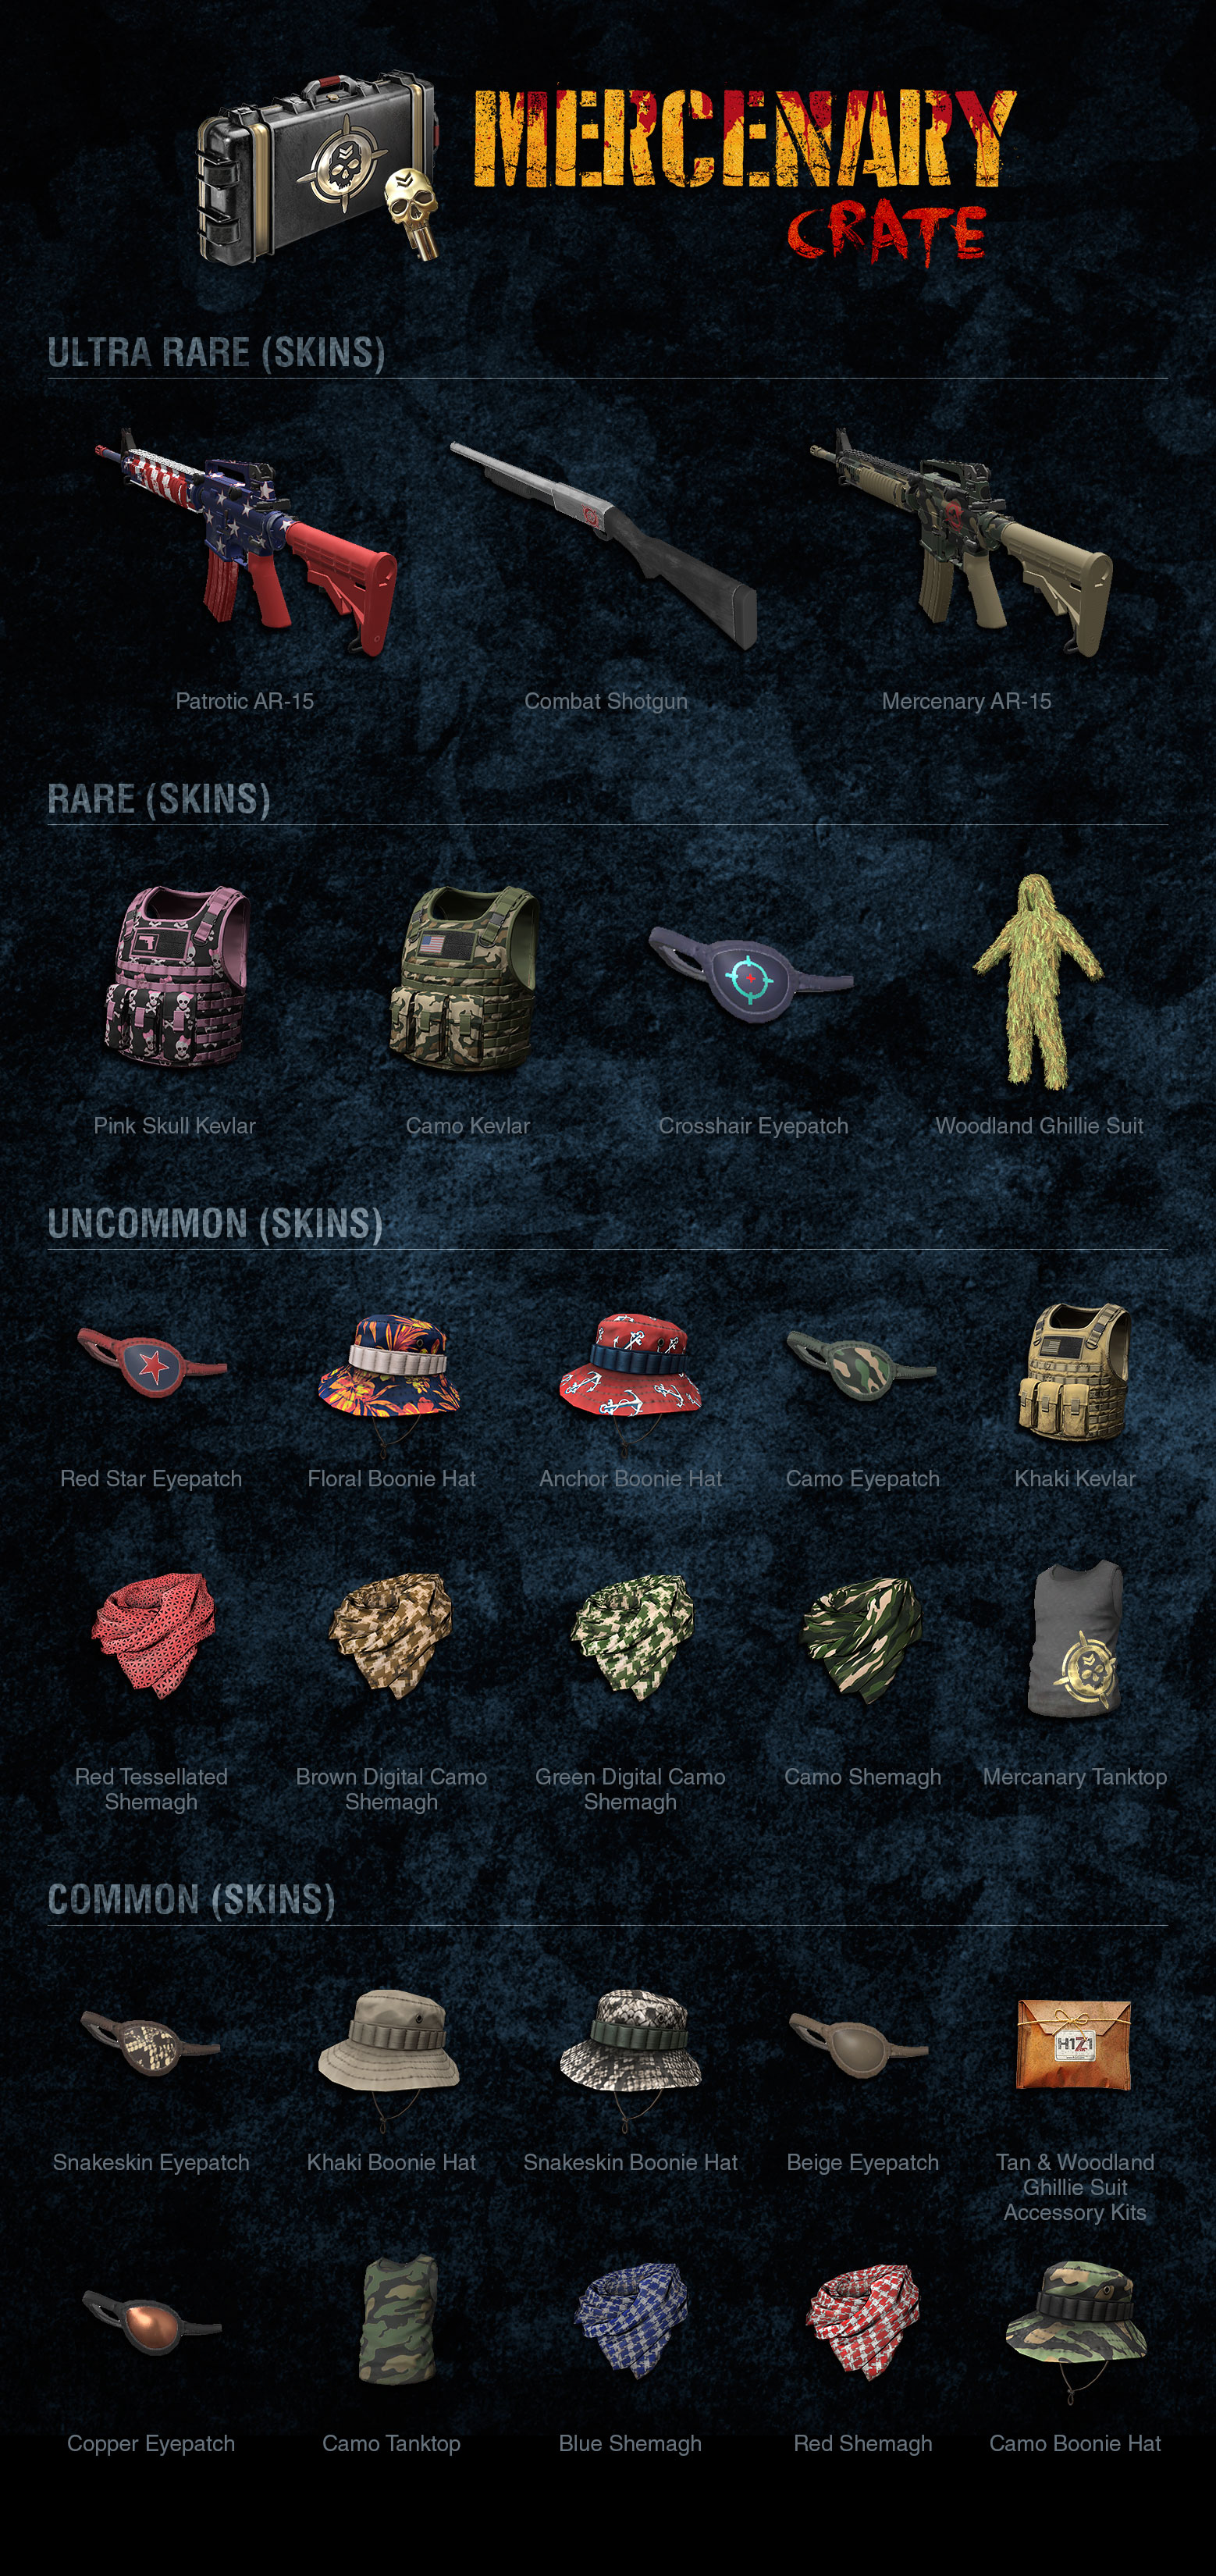 561?v=1.0 new mercenary crate just survive open world zombie survival,Invitational H1z1 Crate